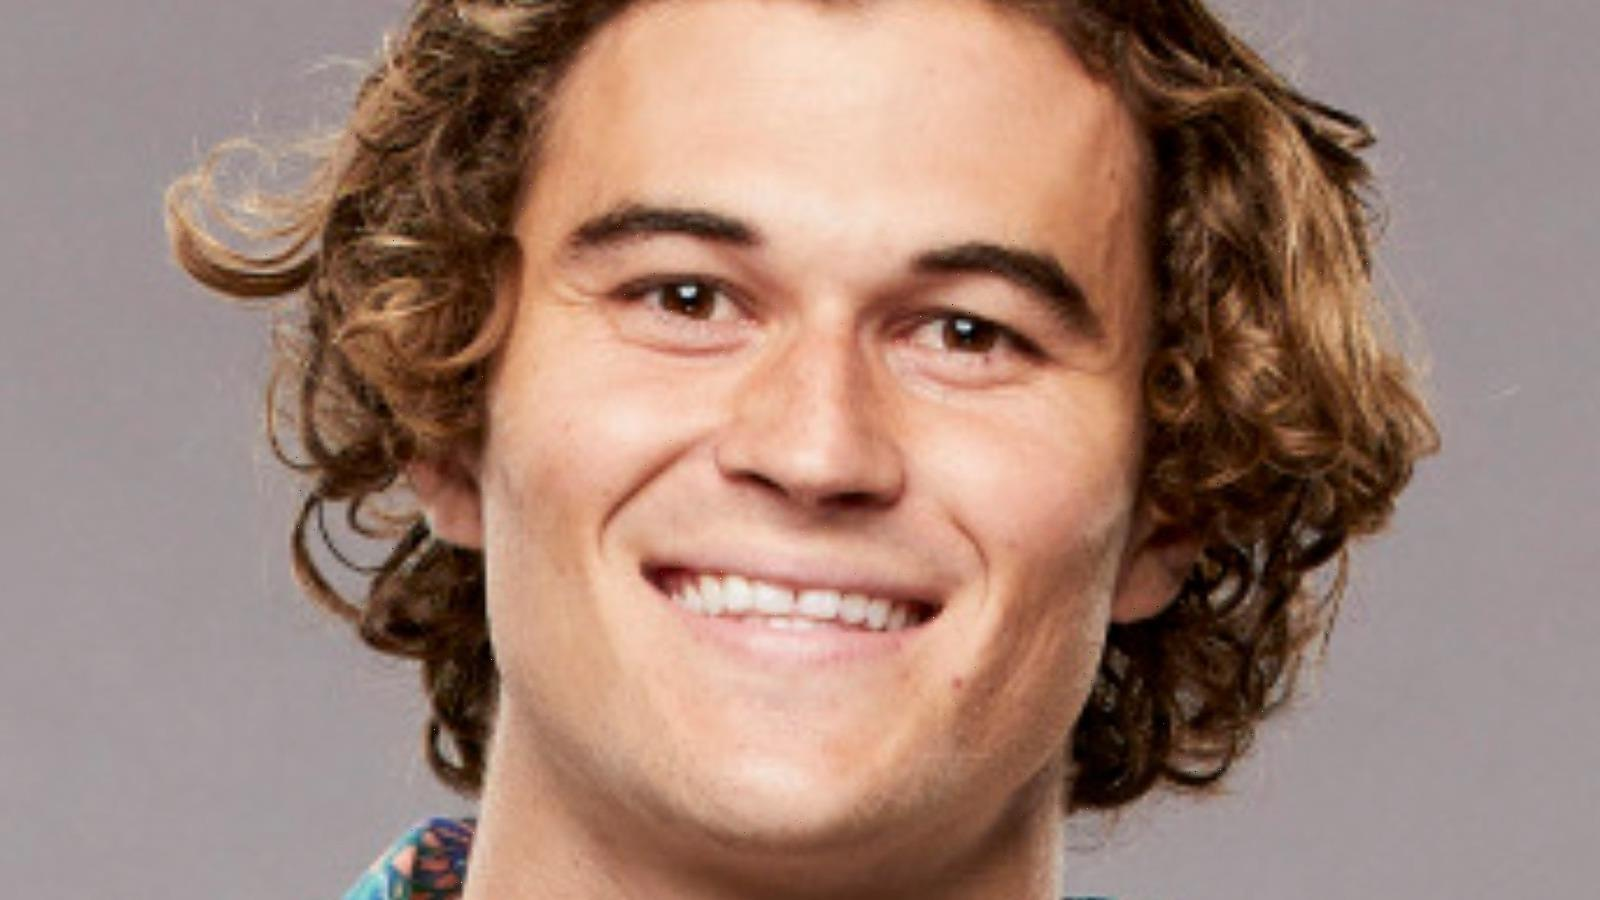 Who Is Travis Long From Big Brother?